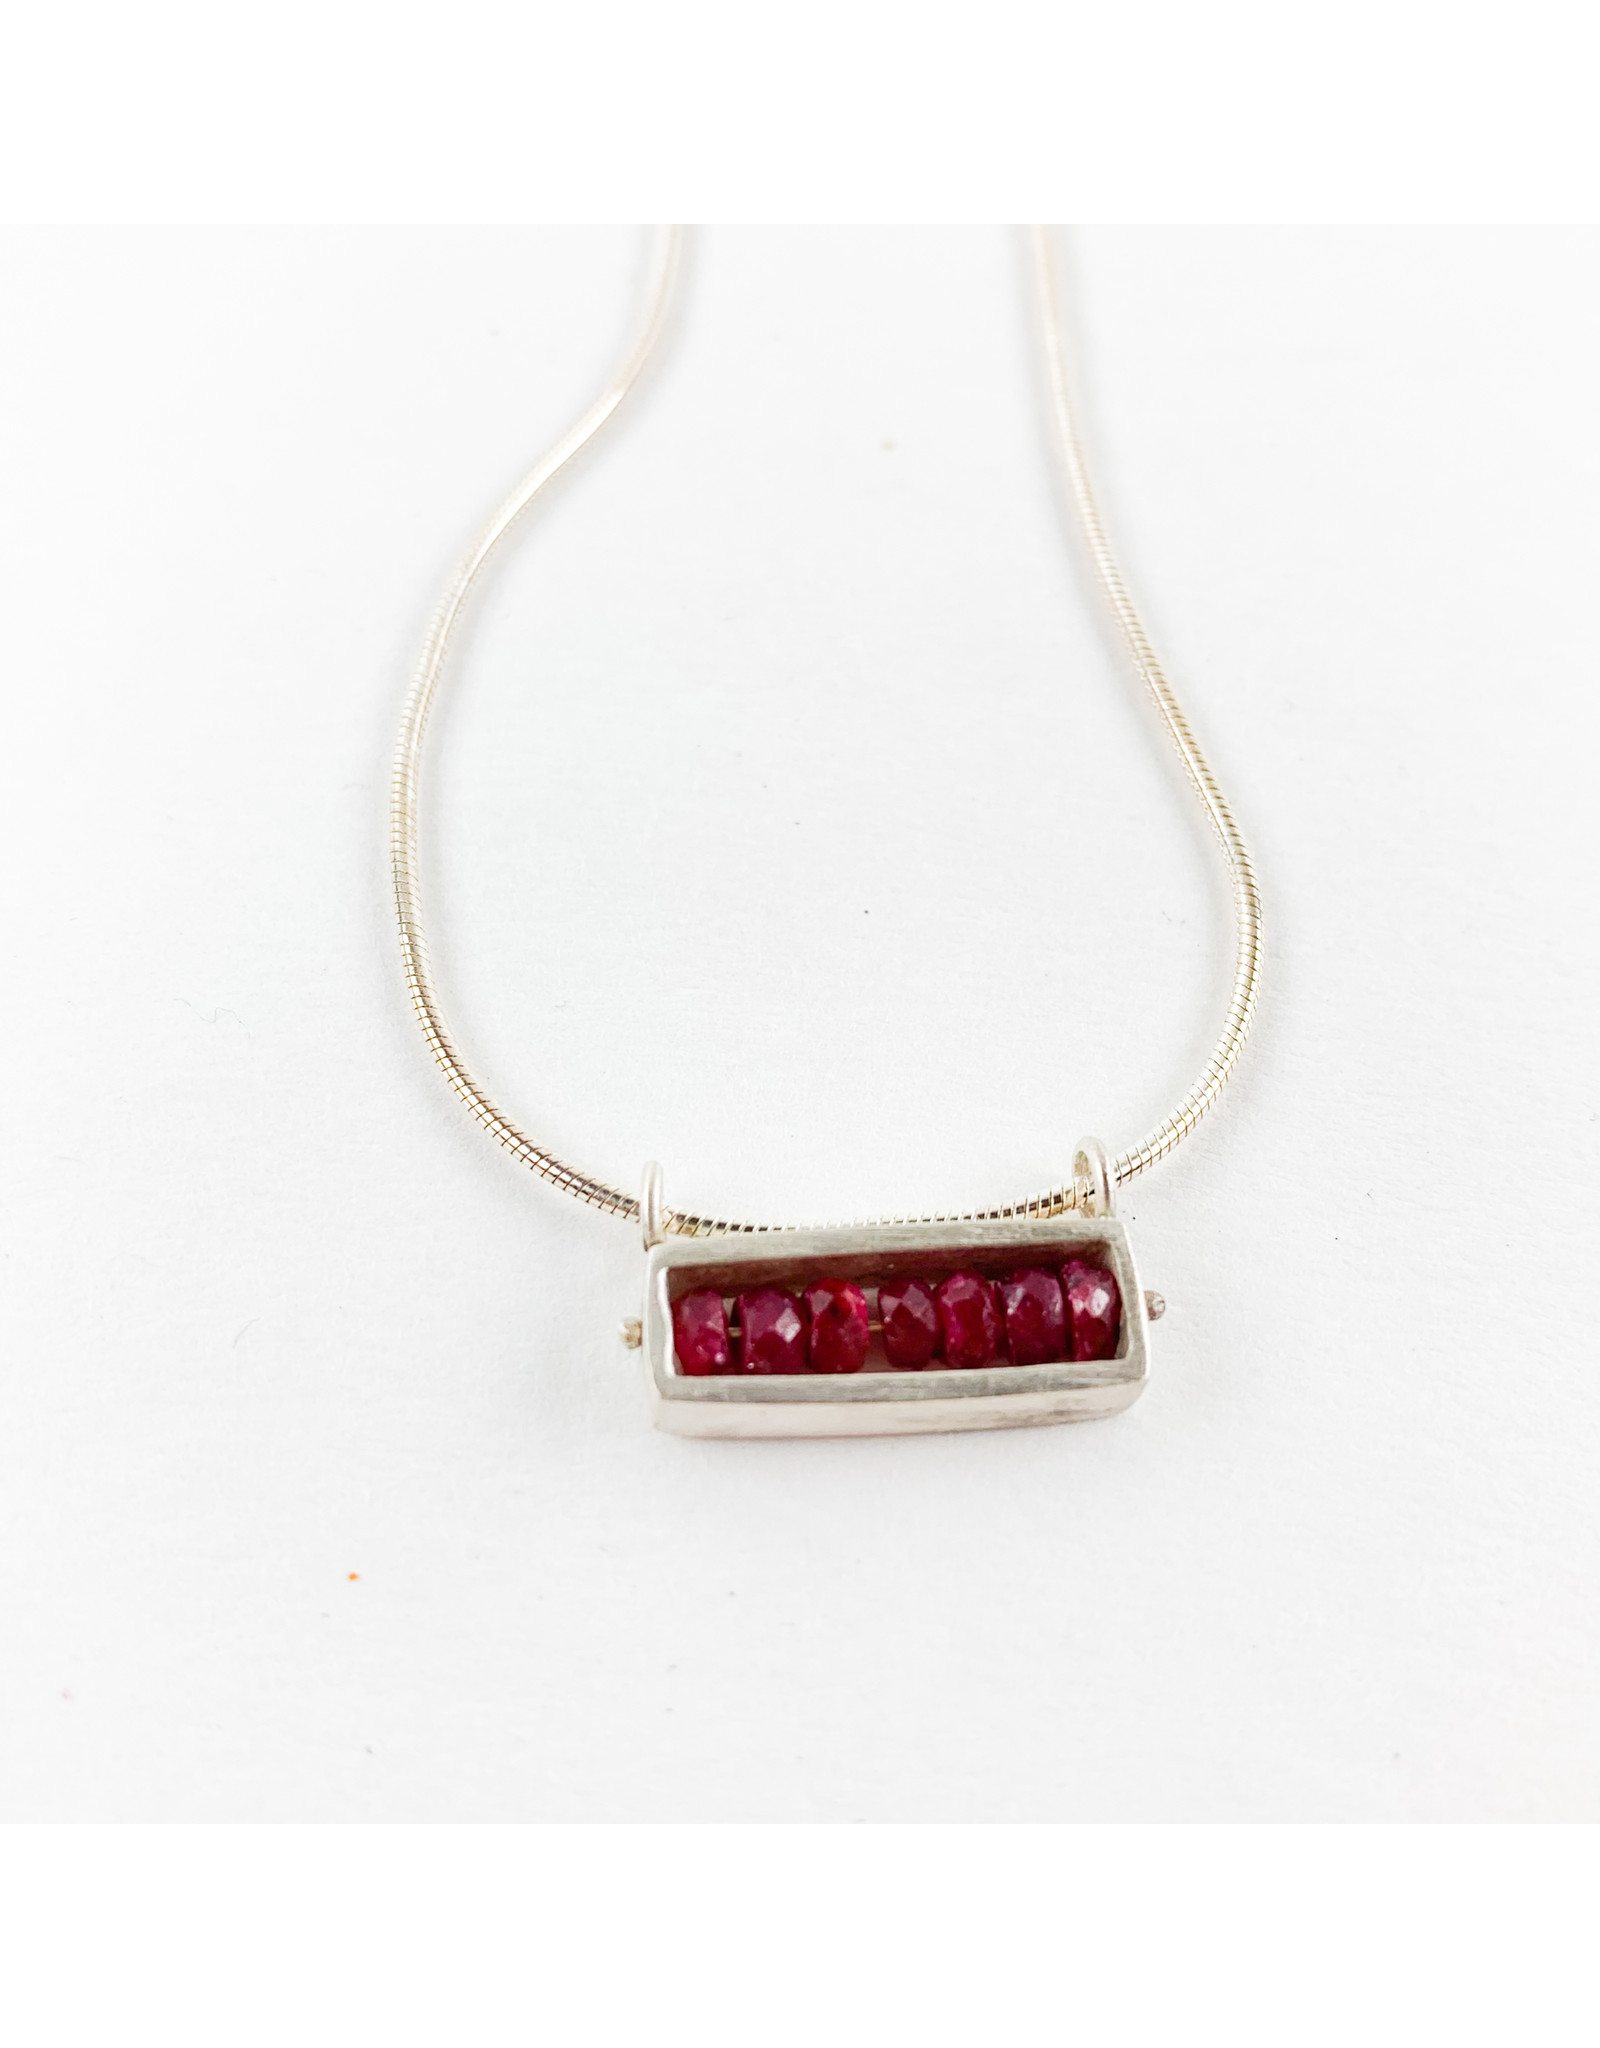 Bridget Clark - Consignment N0172 Sterling Rectangle - Ruby